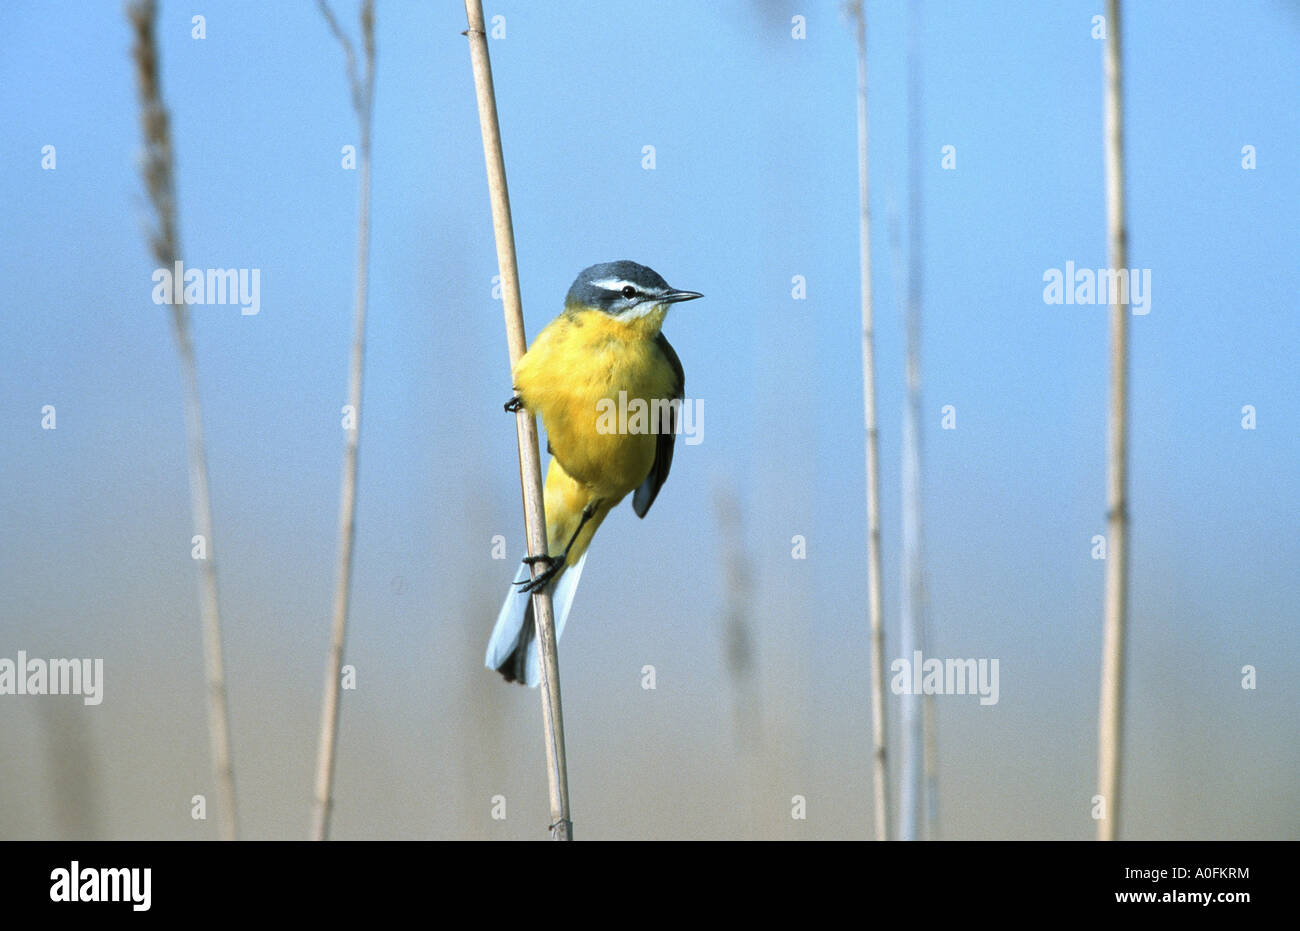 yellow wagtail (Motacilla flava), male, sitting on stem of reed, Austria - Stock Image